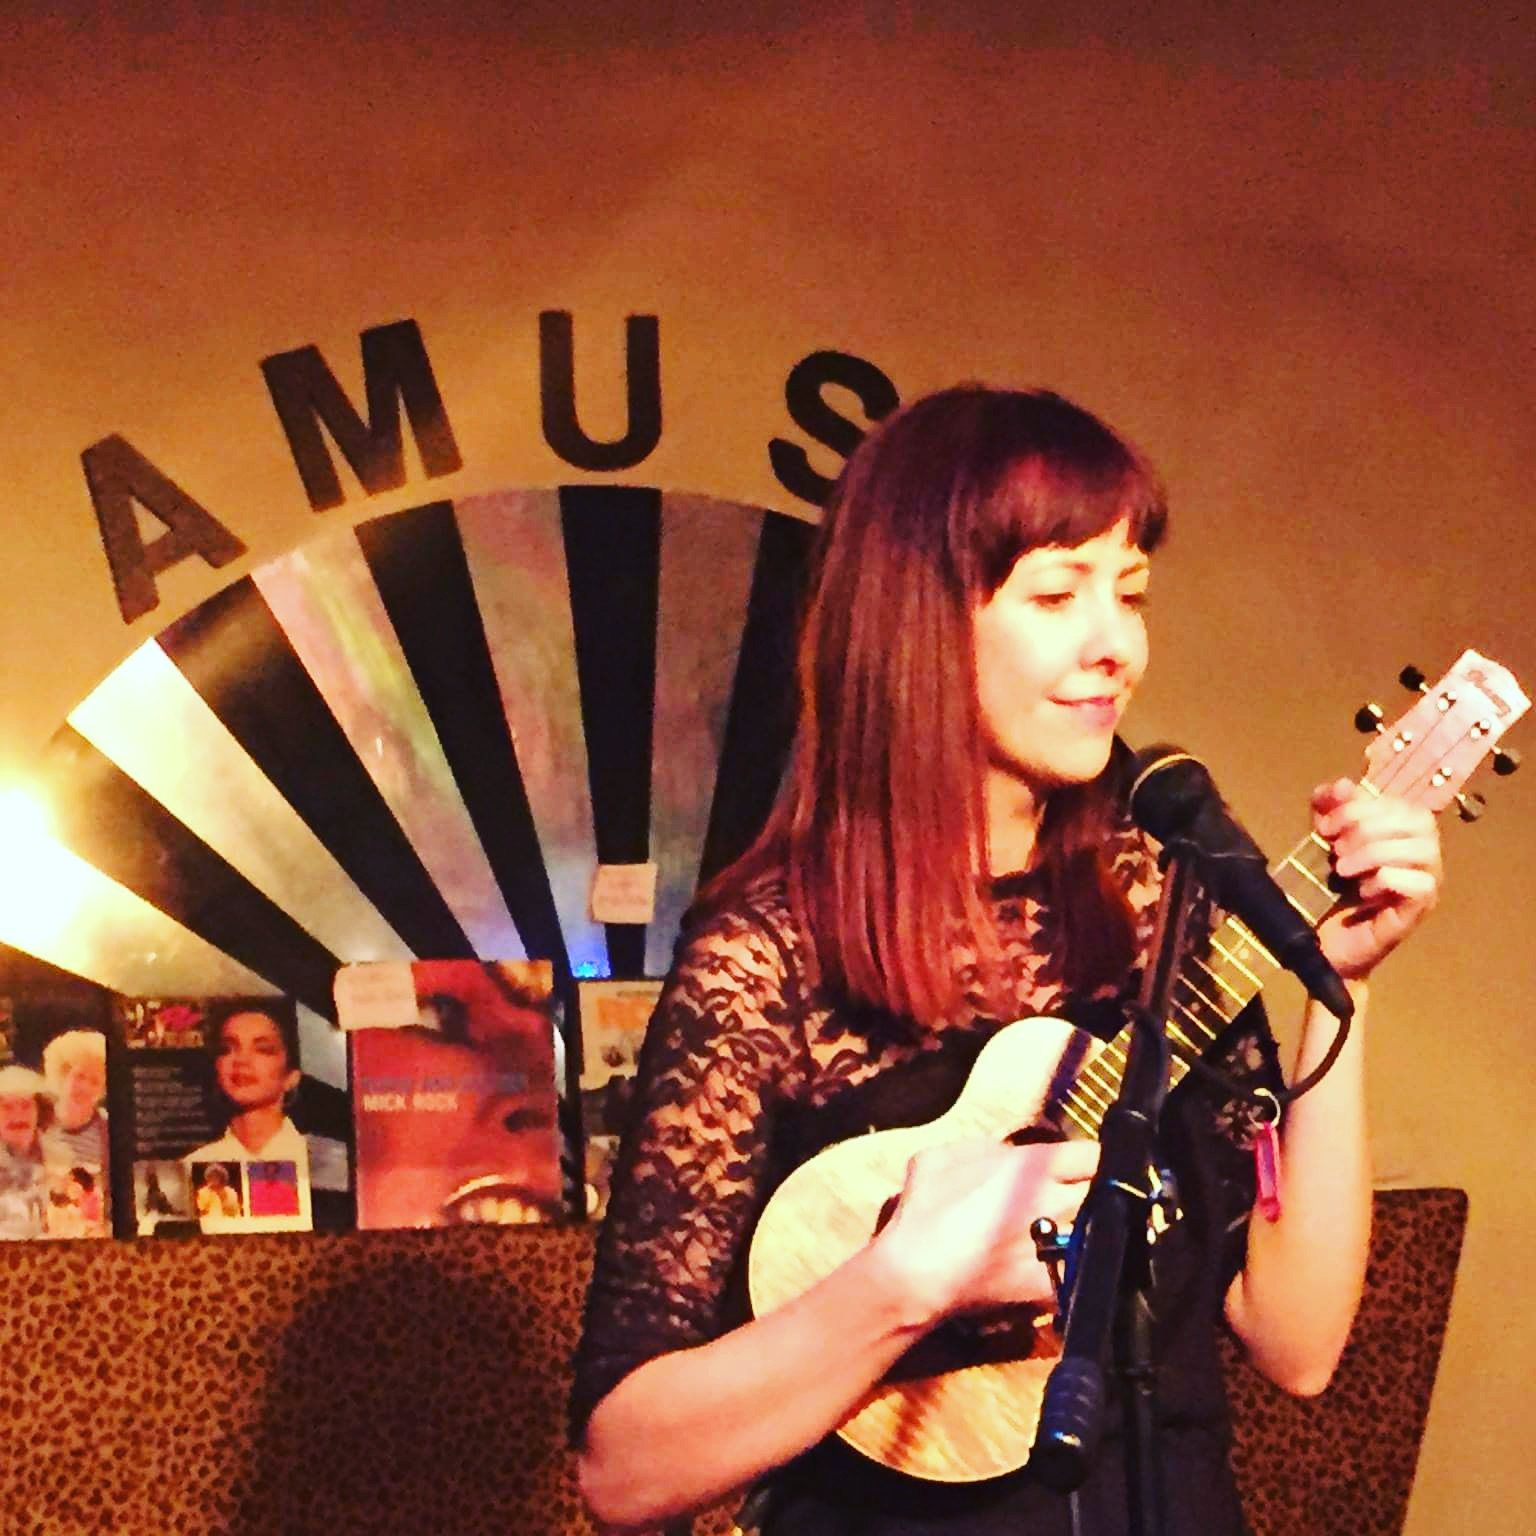 A photo from my birthday gig at Amuse Cafe.